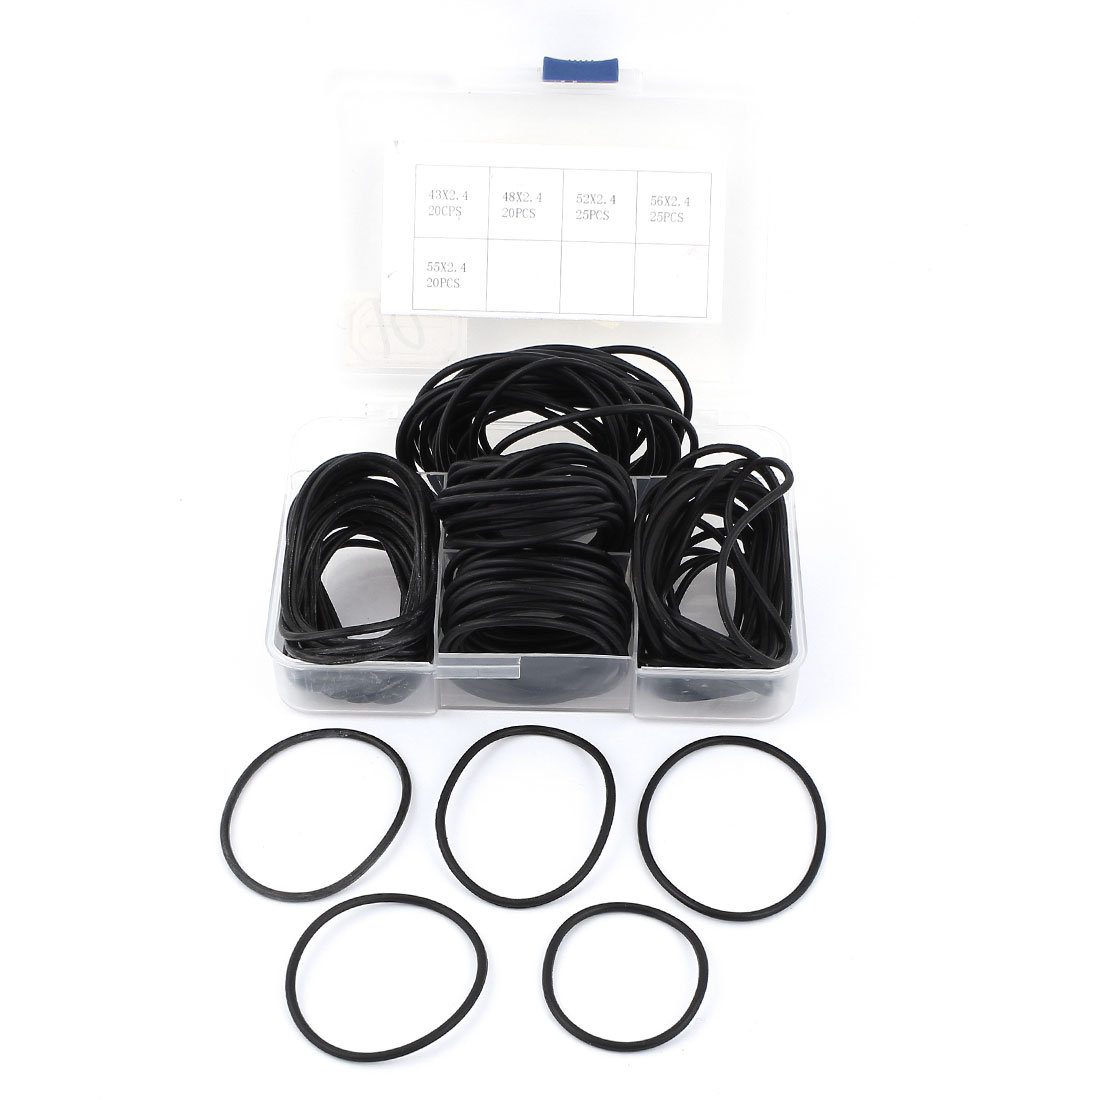 Replacement 2.4mm Thickness 5 Size Flexibal Black Rubber Oil Filter Seal O Ring Washer Gasket Spacer 110 Pcs